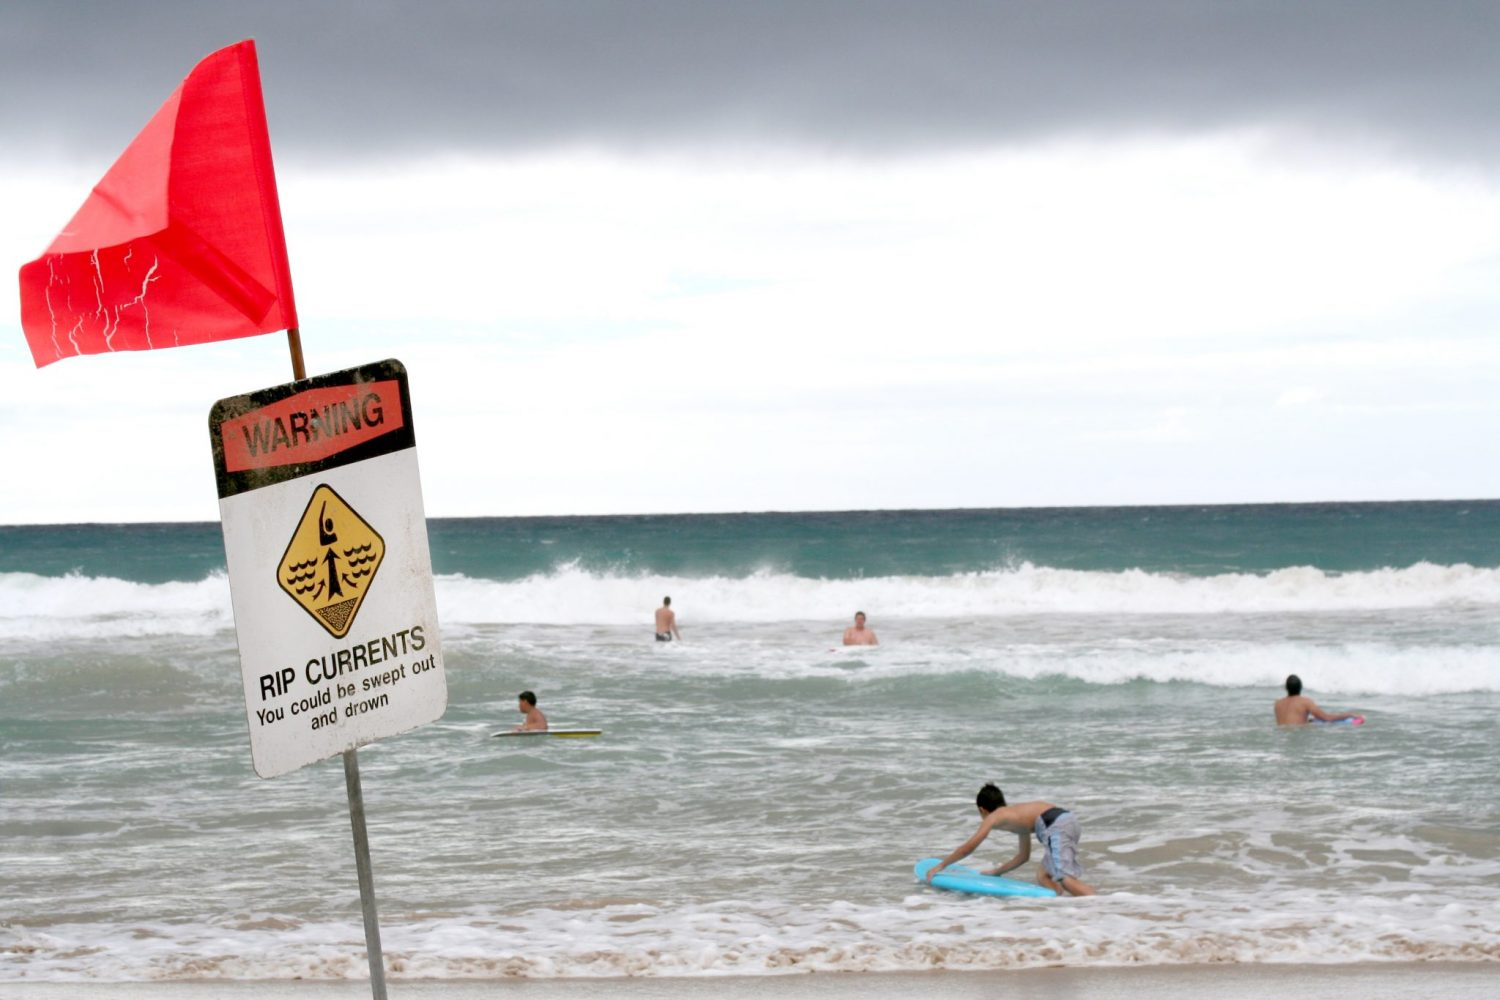 Swimmers are out in the ocean despite the warnings of rip currents.